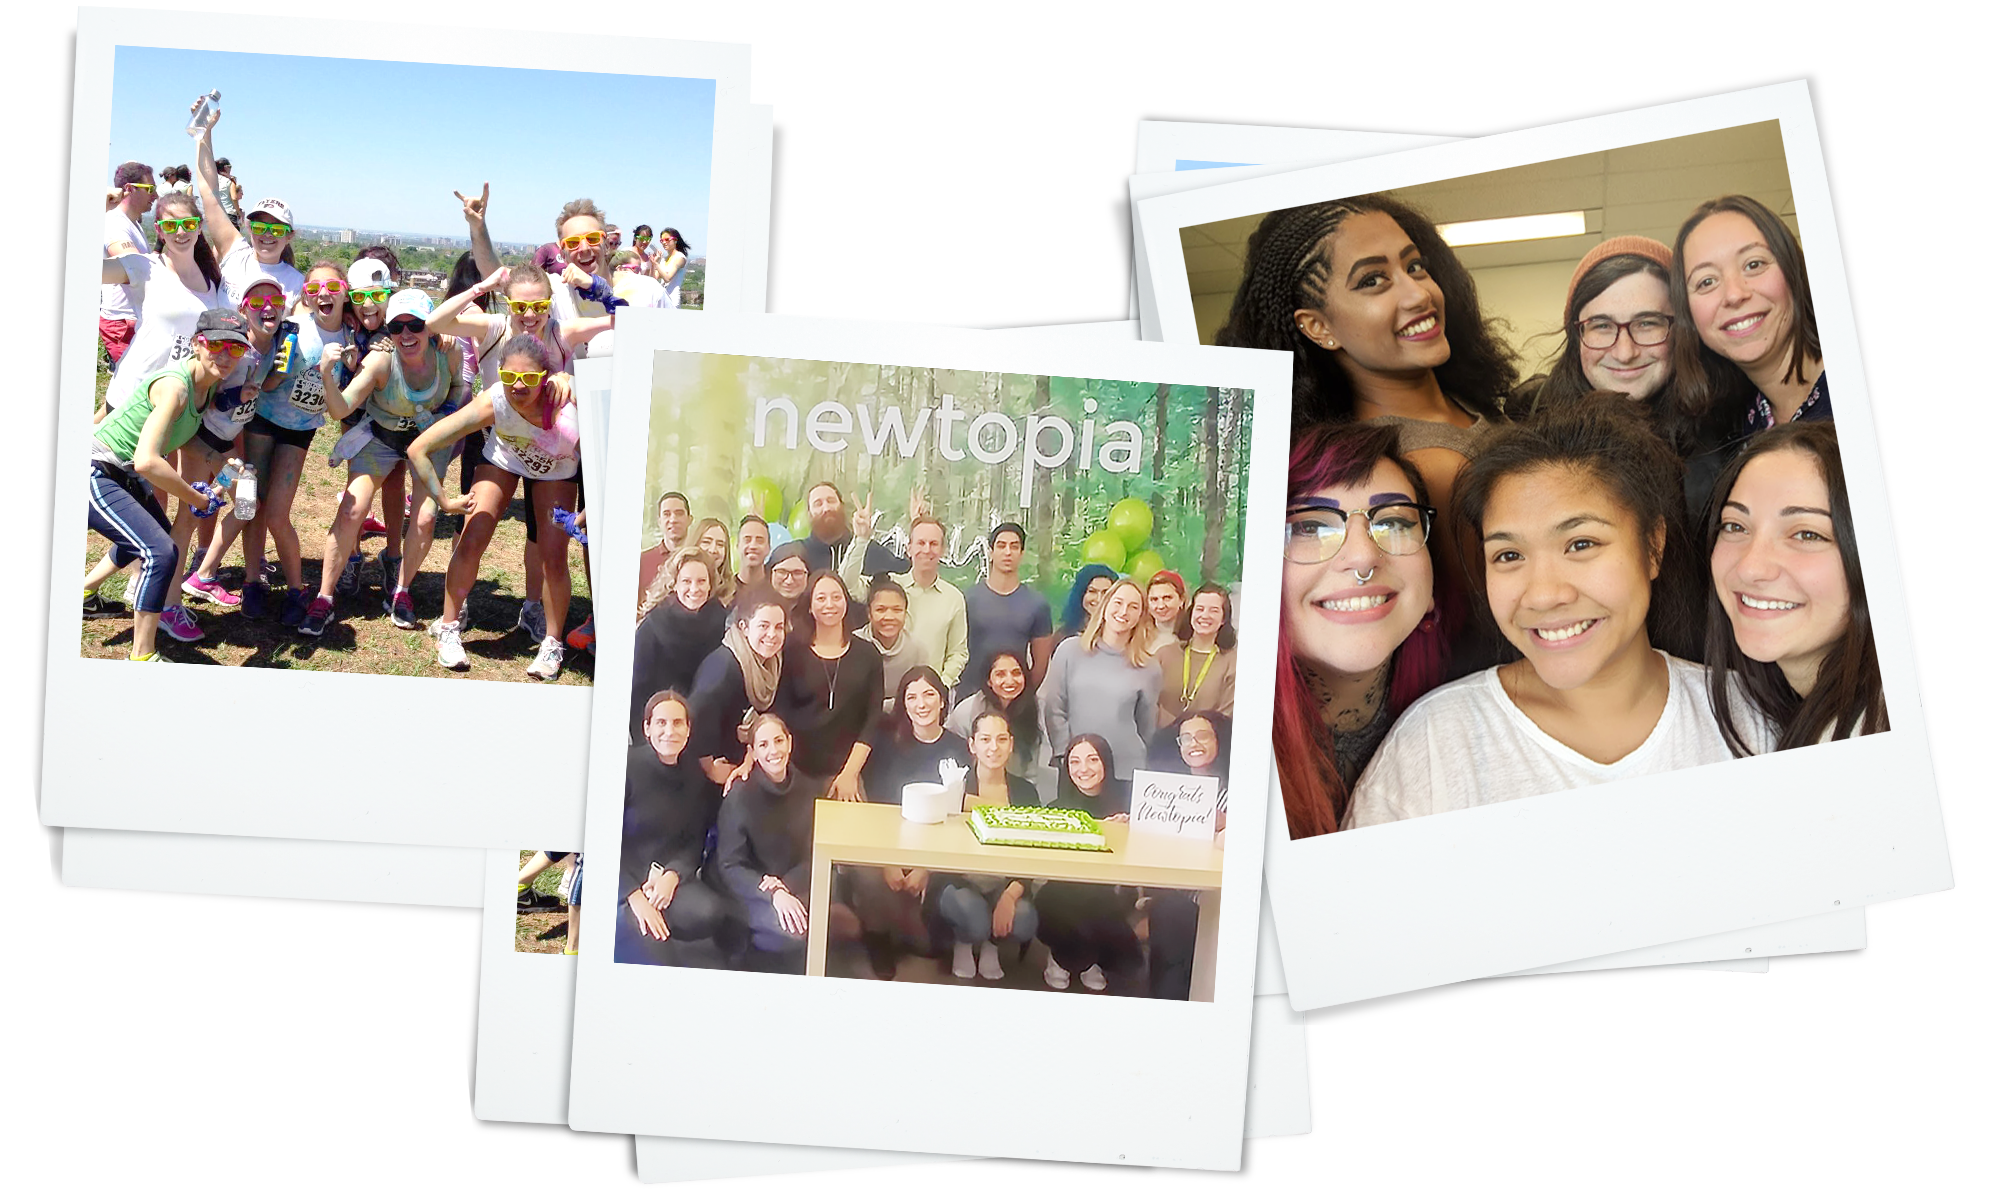 Newtopia team smiling and having fun at work in 3 polaroid images